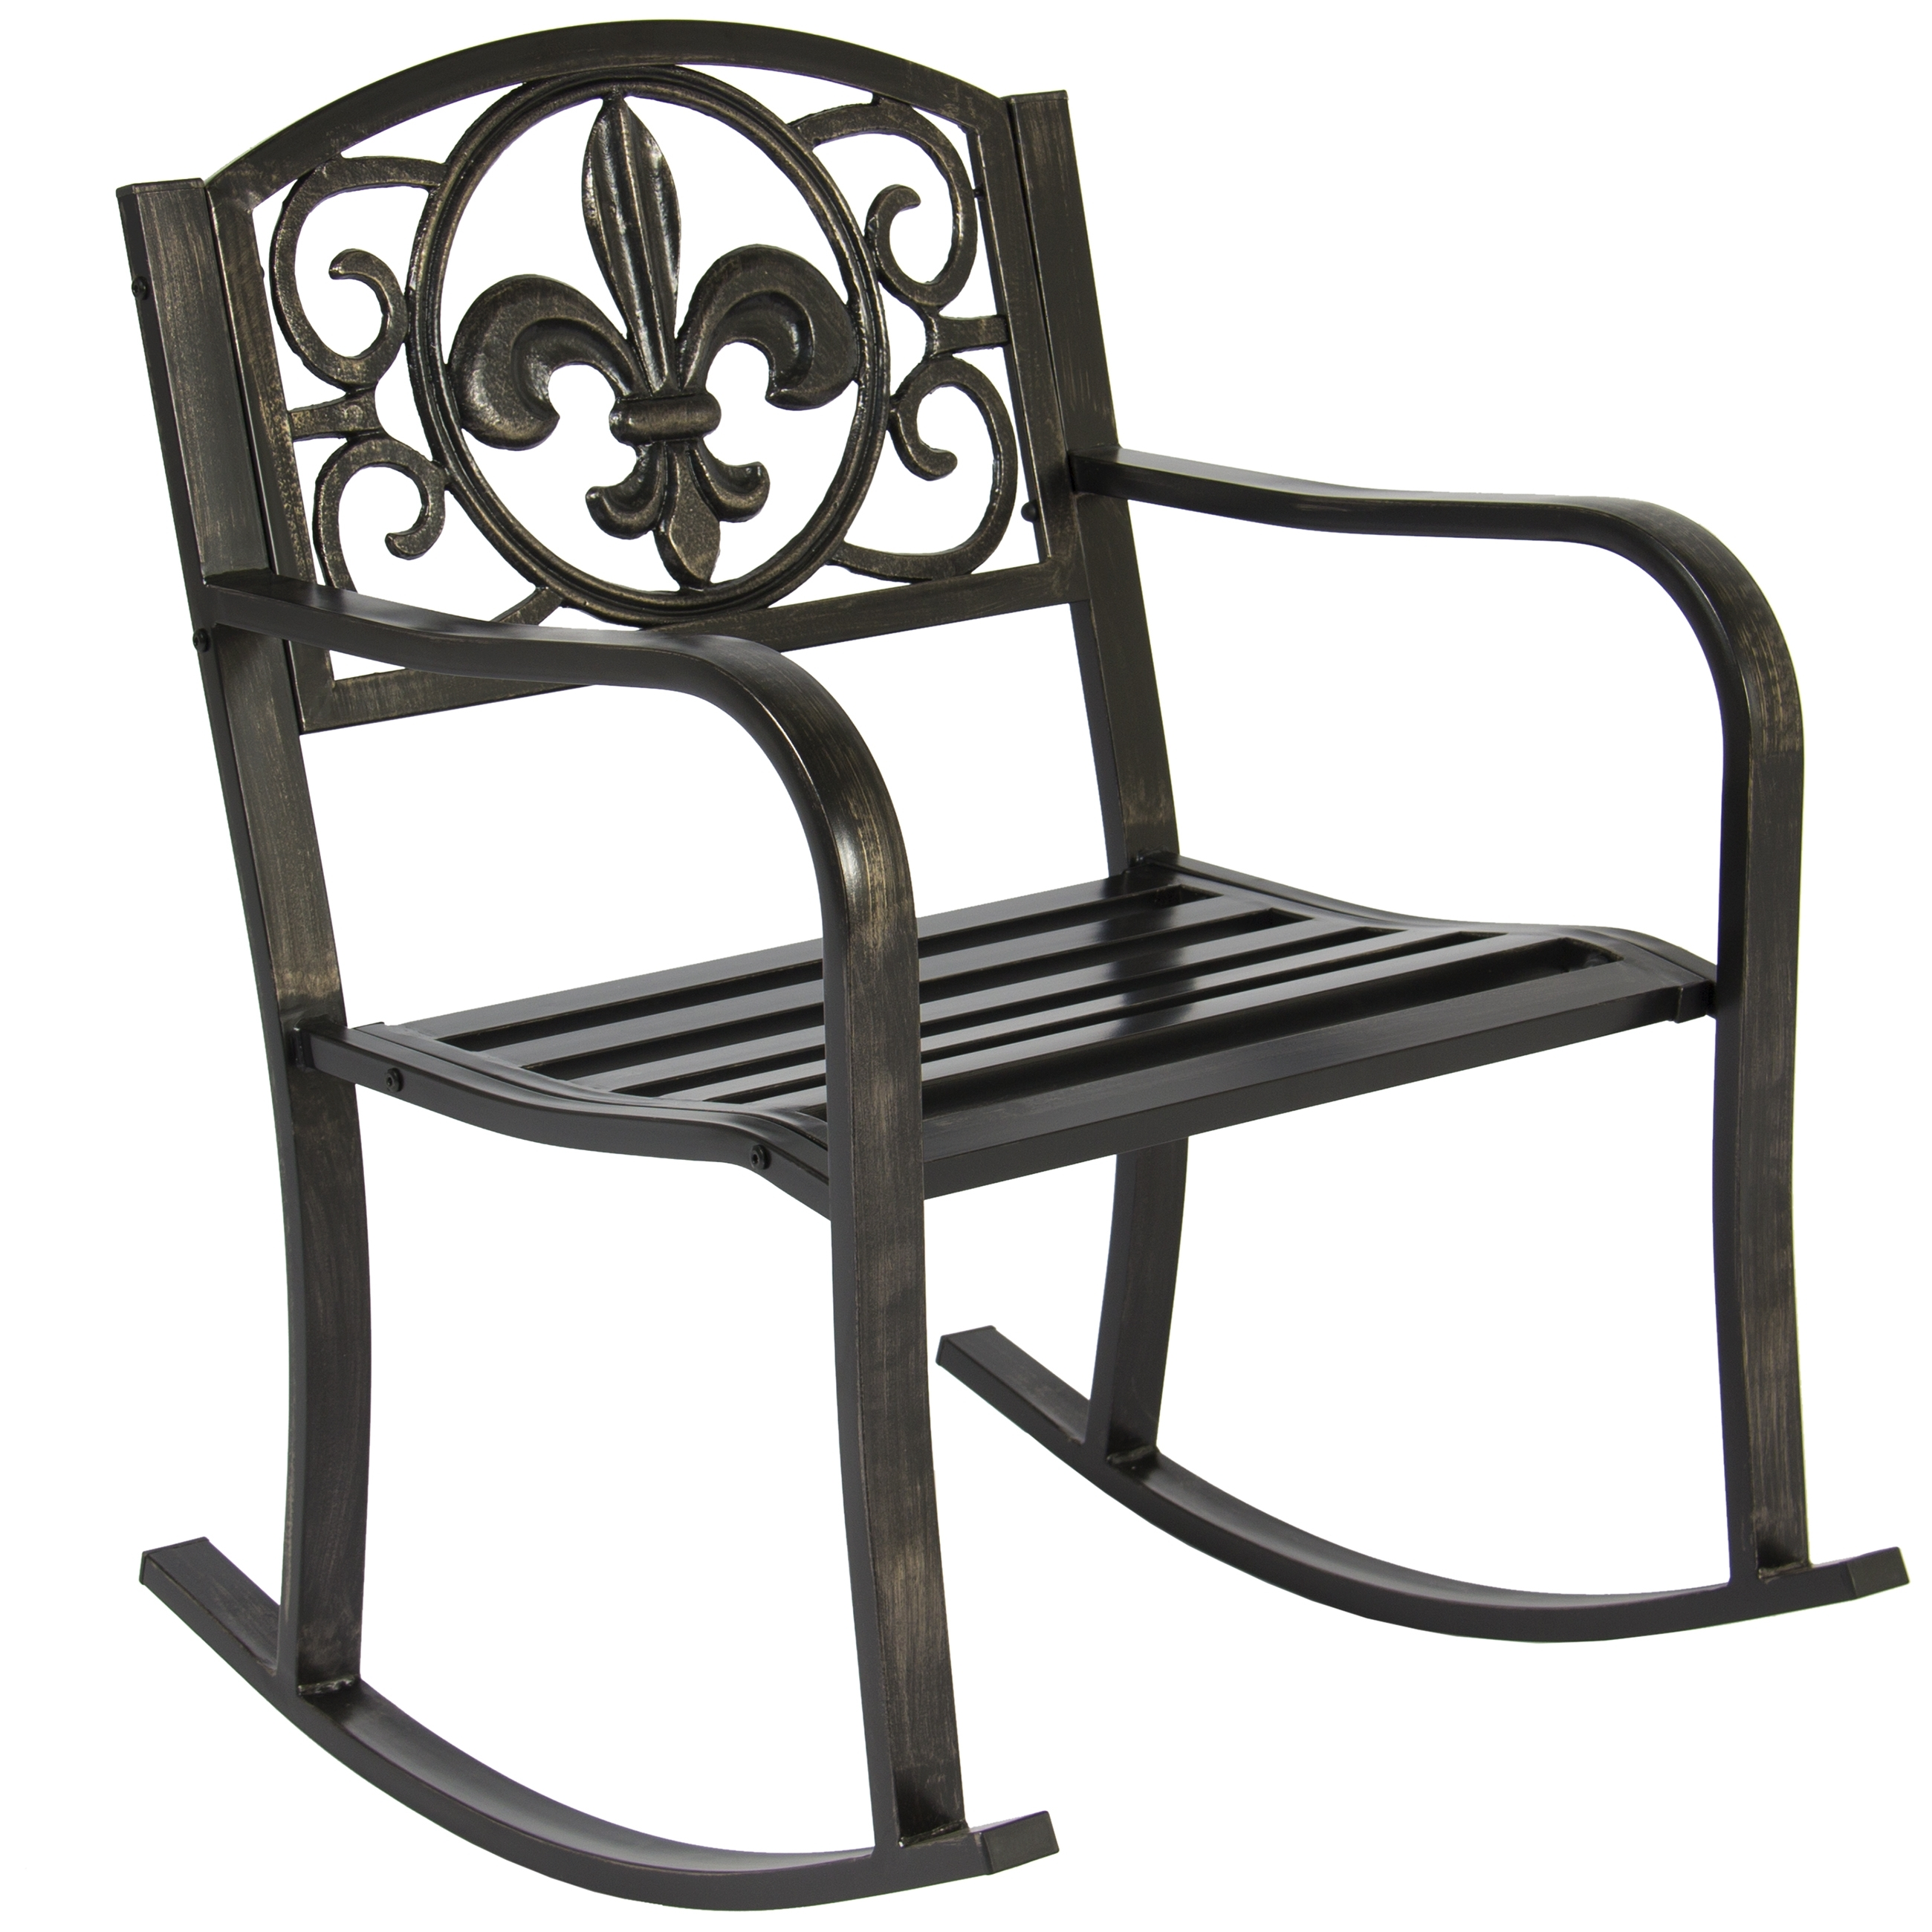 Best Choice Products Metal Rocking Chair Seat For Patio, Porch, Deck Within Patio Metal Rocking Chairs (View 1 of 15)